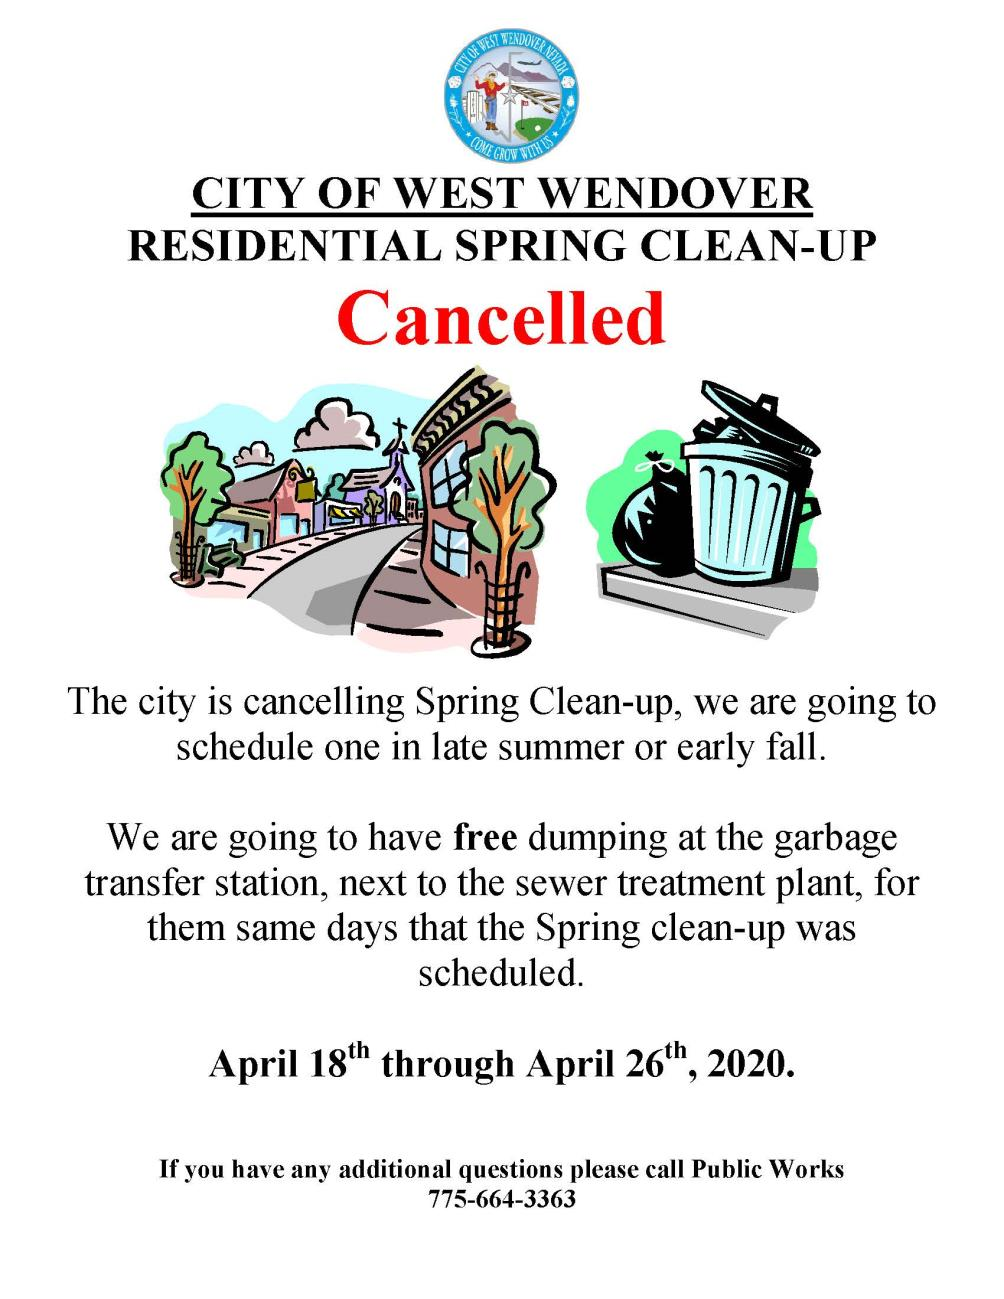 Traditional Spring Clean Up Cancelled ... But You Can Dump For Free The Same Week